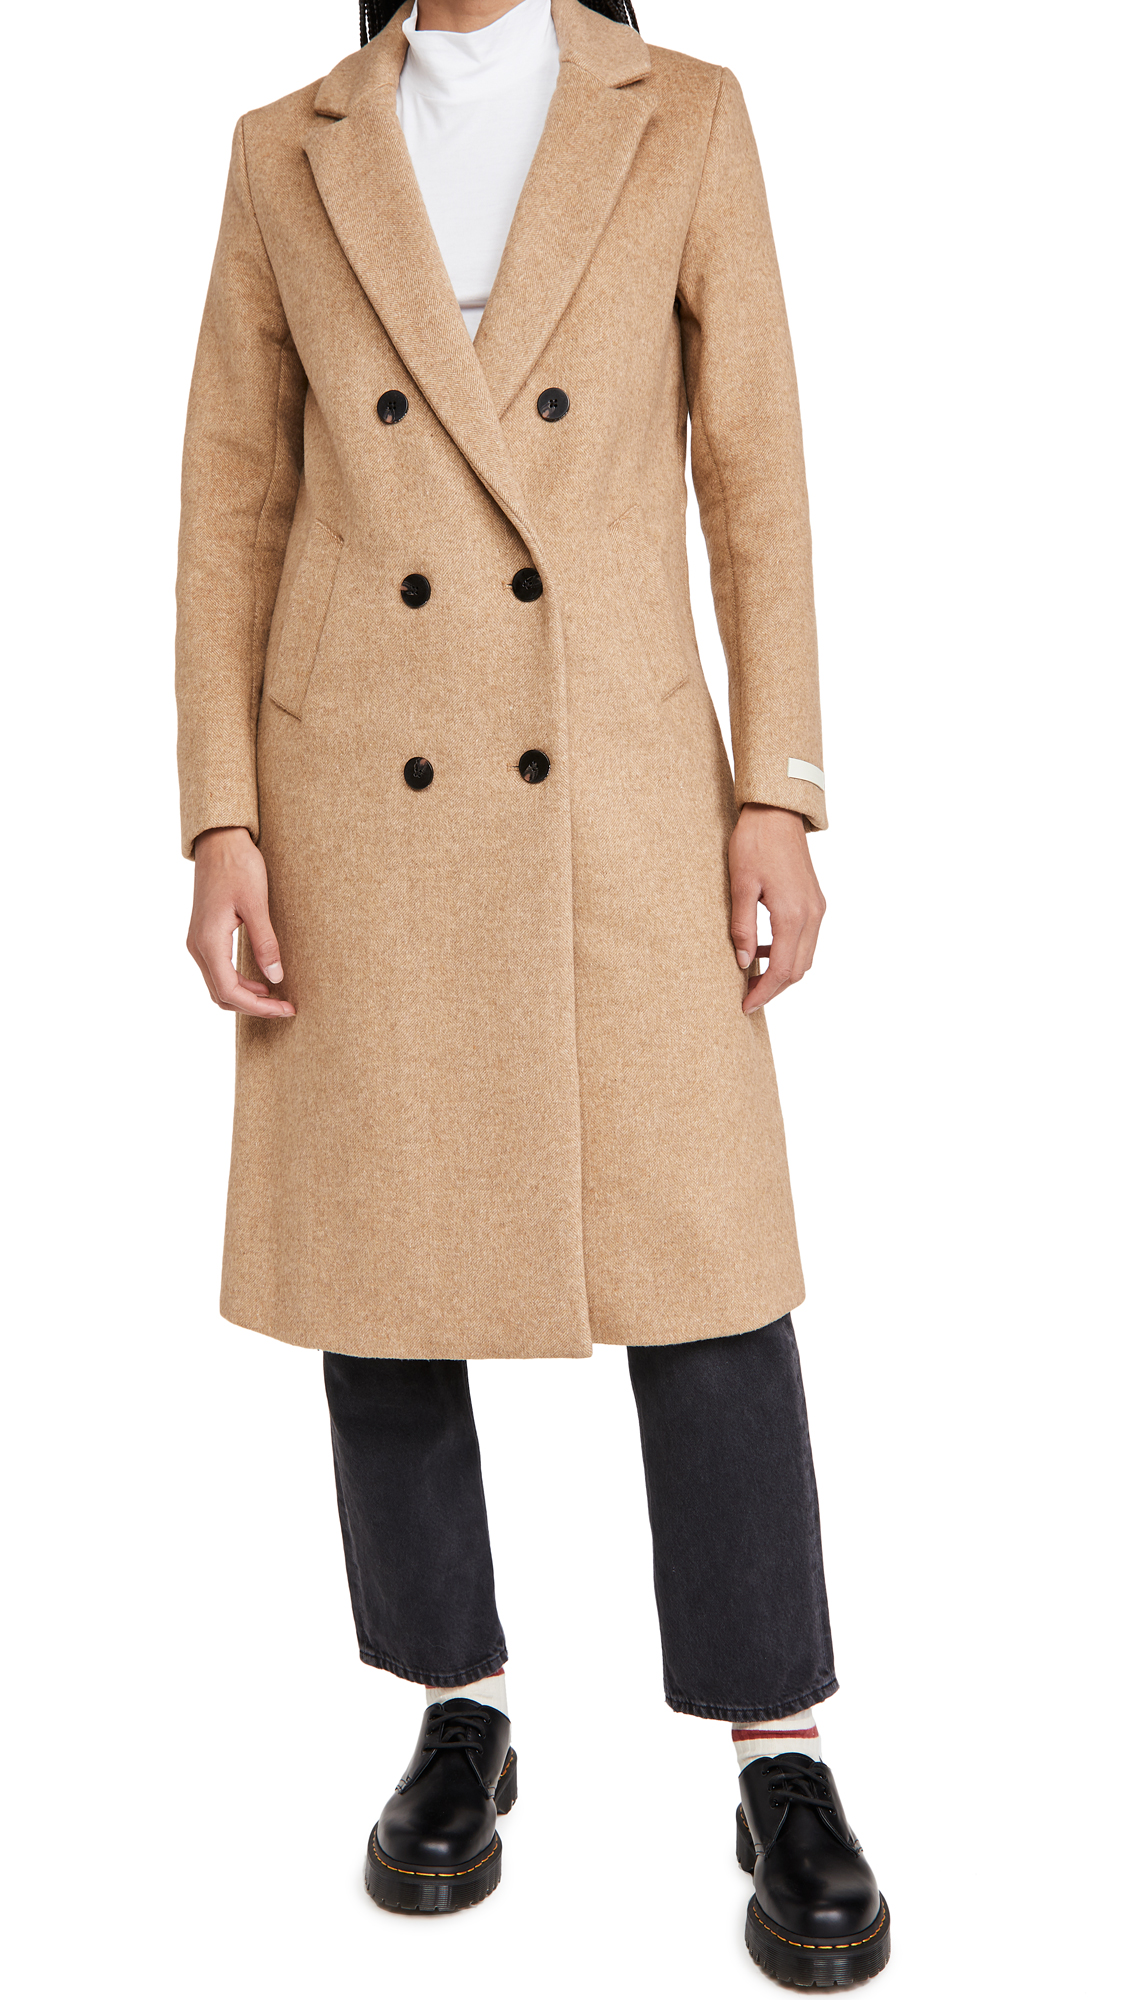 Scotch & Soda/Maison Scotch Tailored Double Breasted Coat